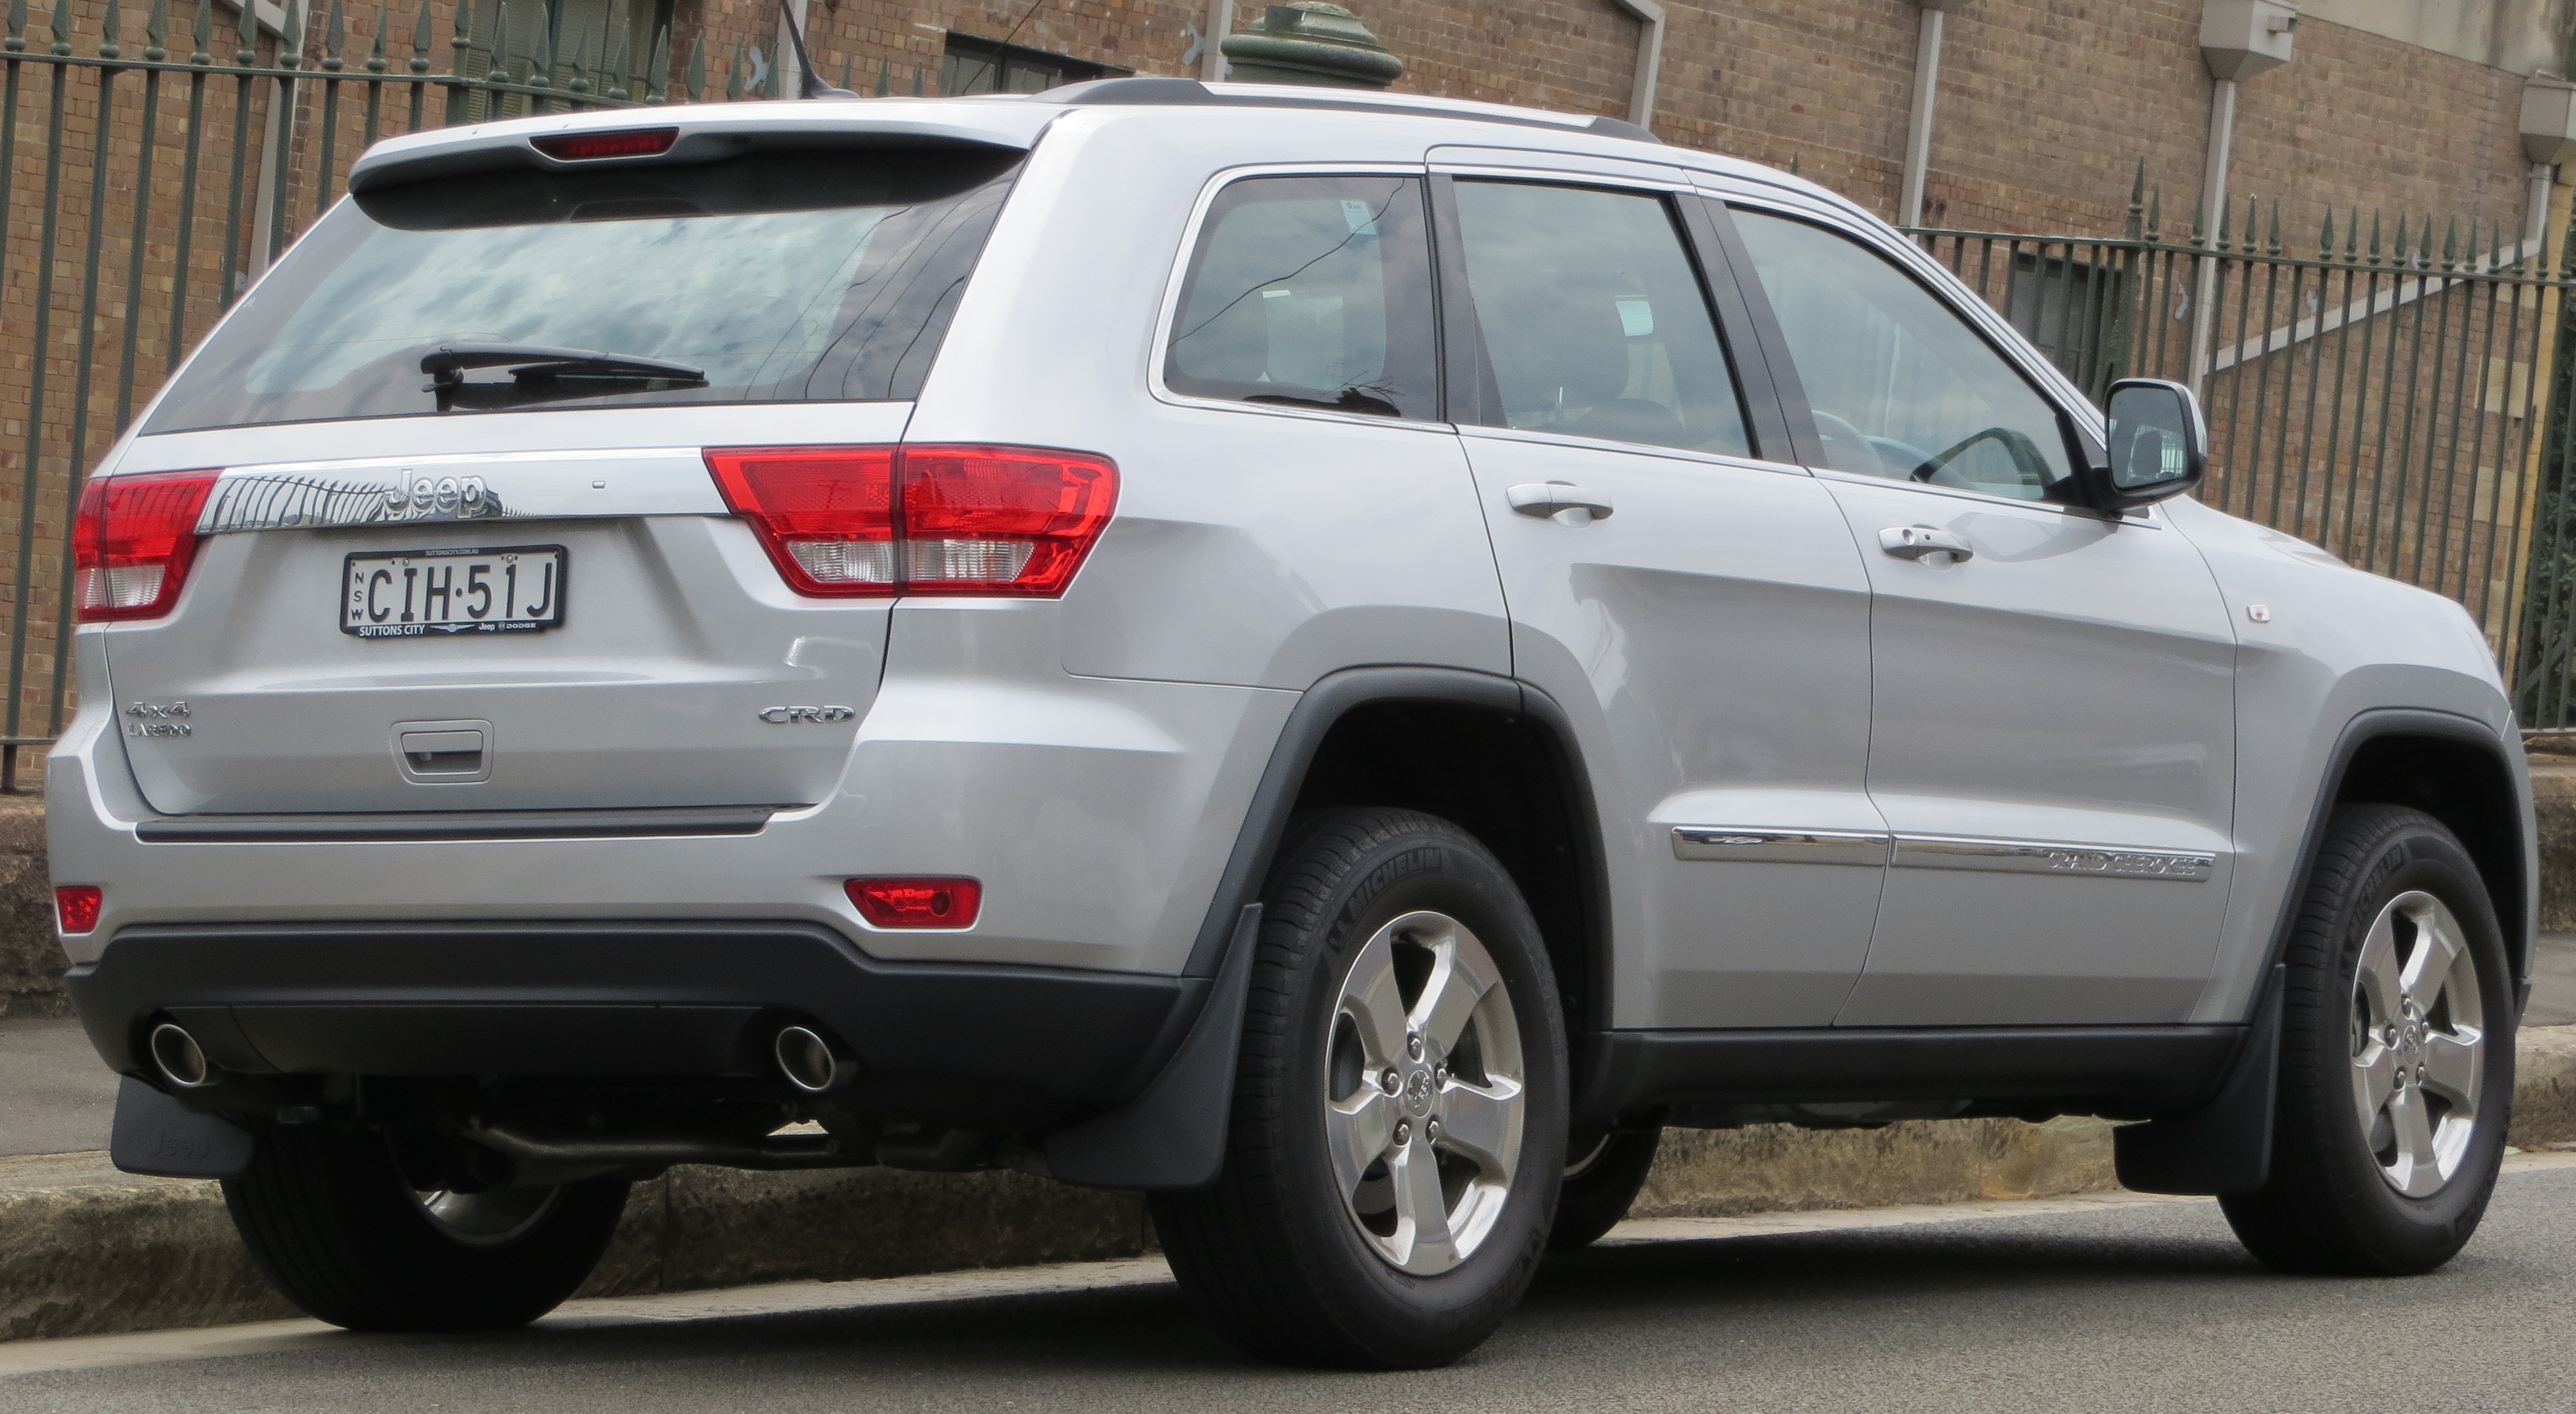 File 2012 Jeep Grand Cherokee Wk2 My12 Laredo Crd 4wd Wagon 2012 10 26 02 Jpg Wikimedia Commons